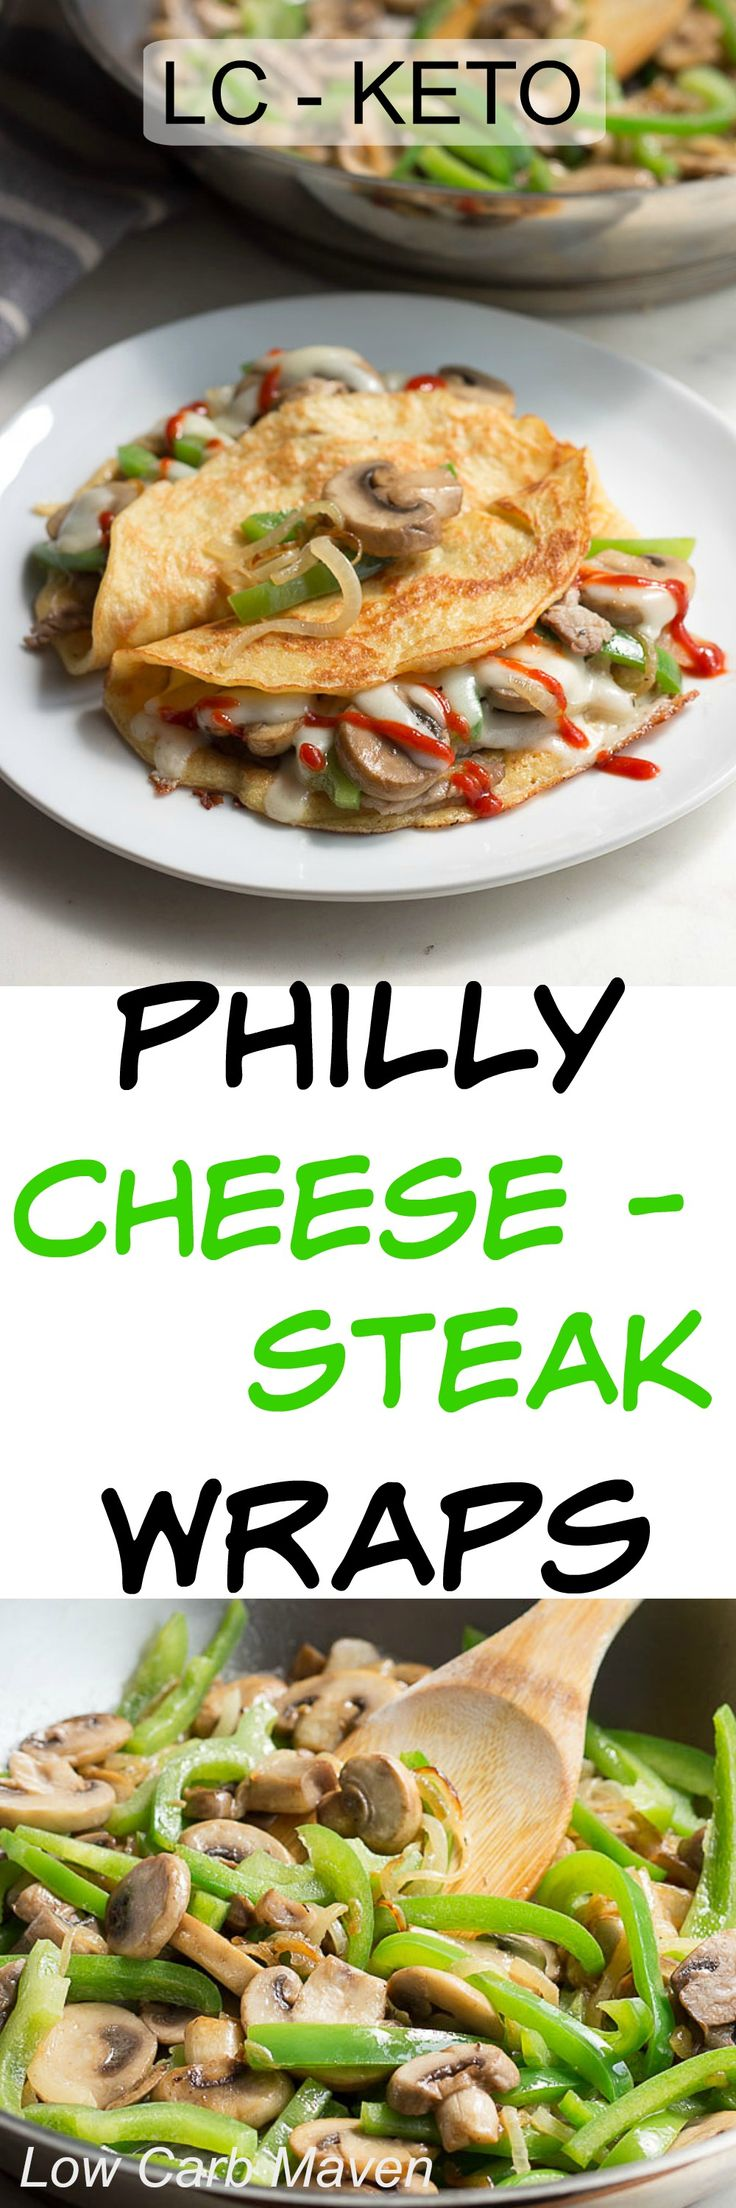 Low carb and keto Philly Cheese Steak Wraps are an easy breakfast or lunch.